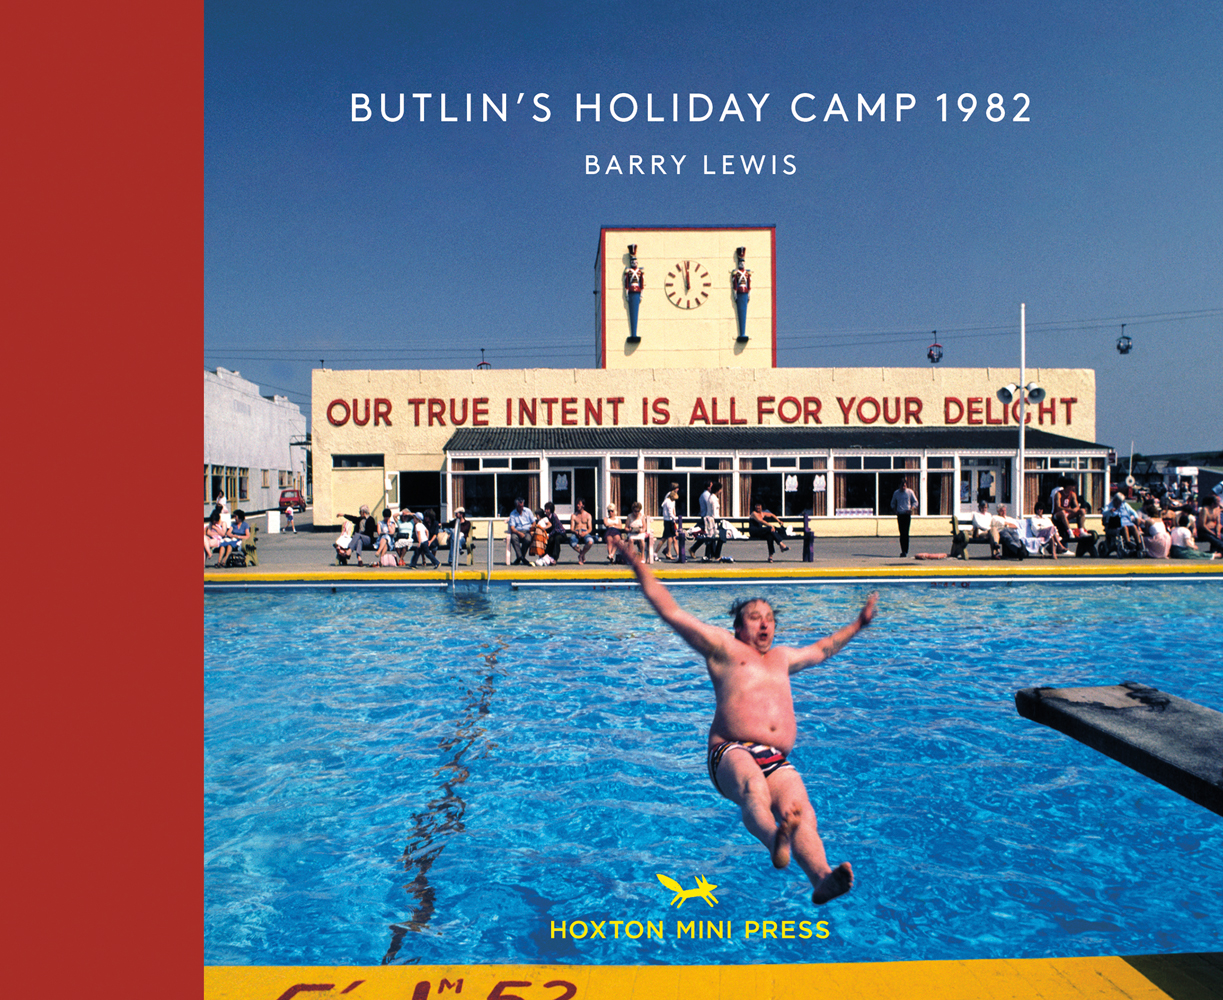 Butlin's Holiday Camp 1982